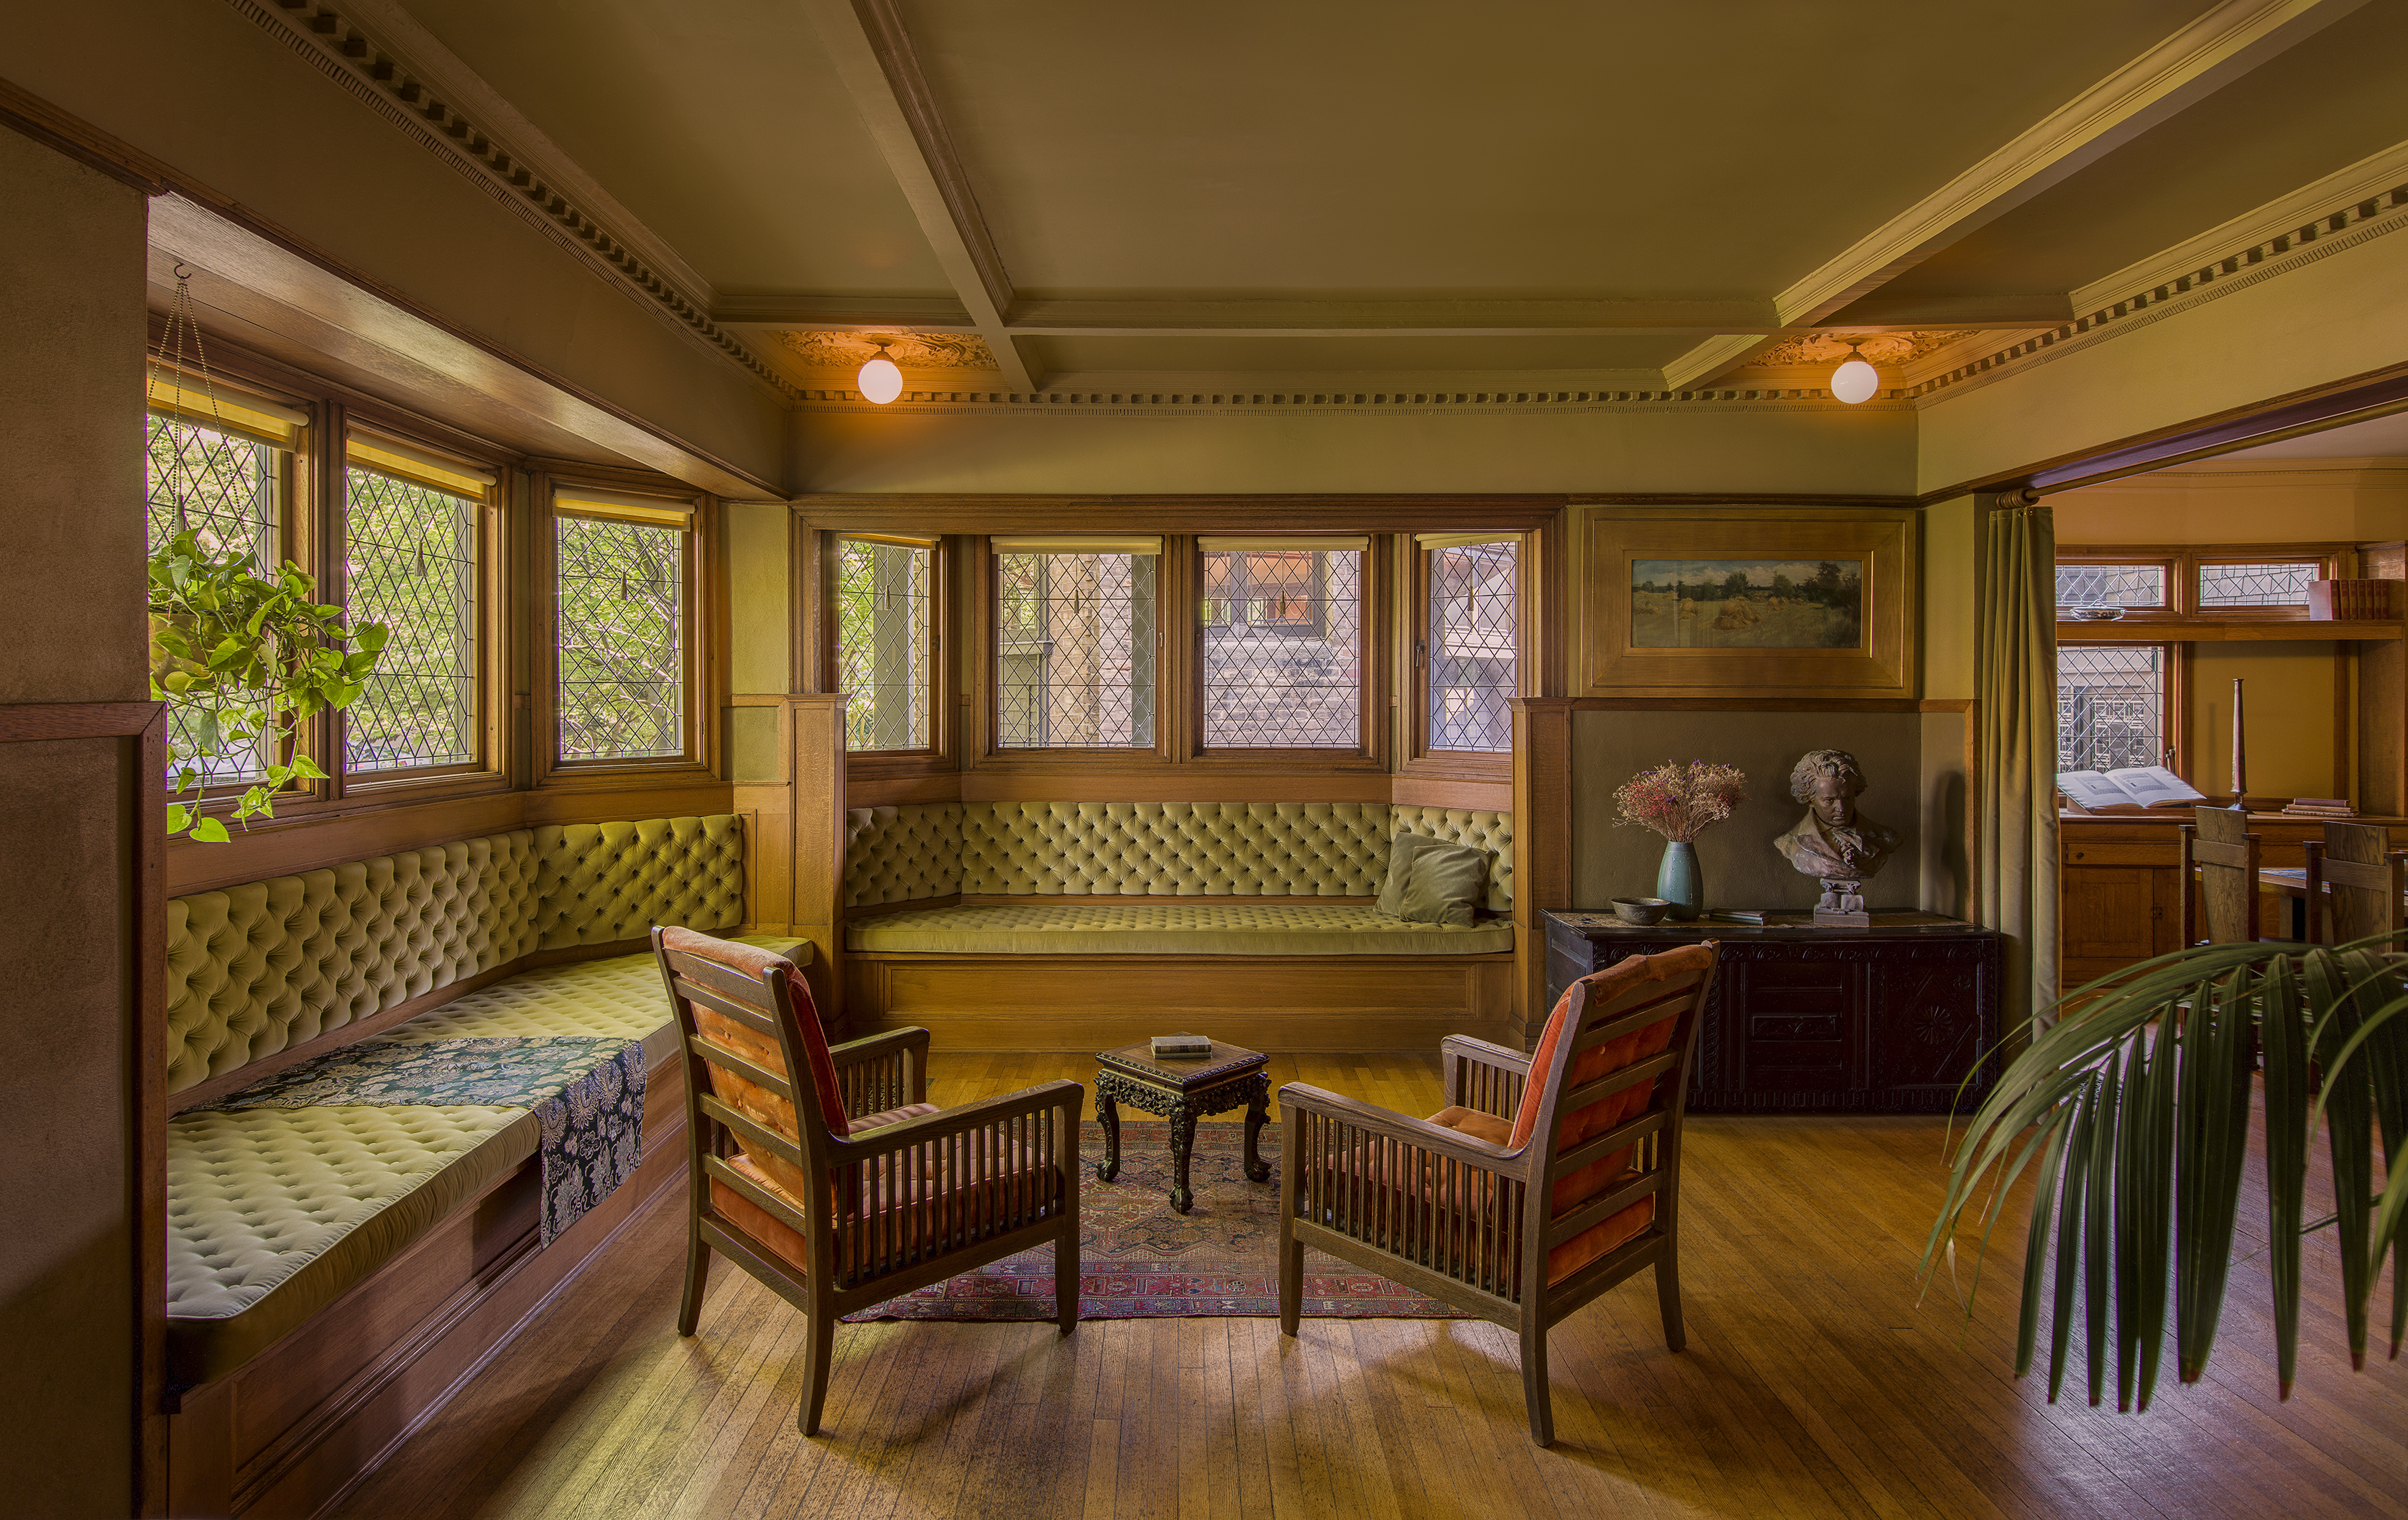 Home furnitures an interior design - Living Room Of Frank Lloyd Wright S Home In Oak Park